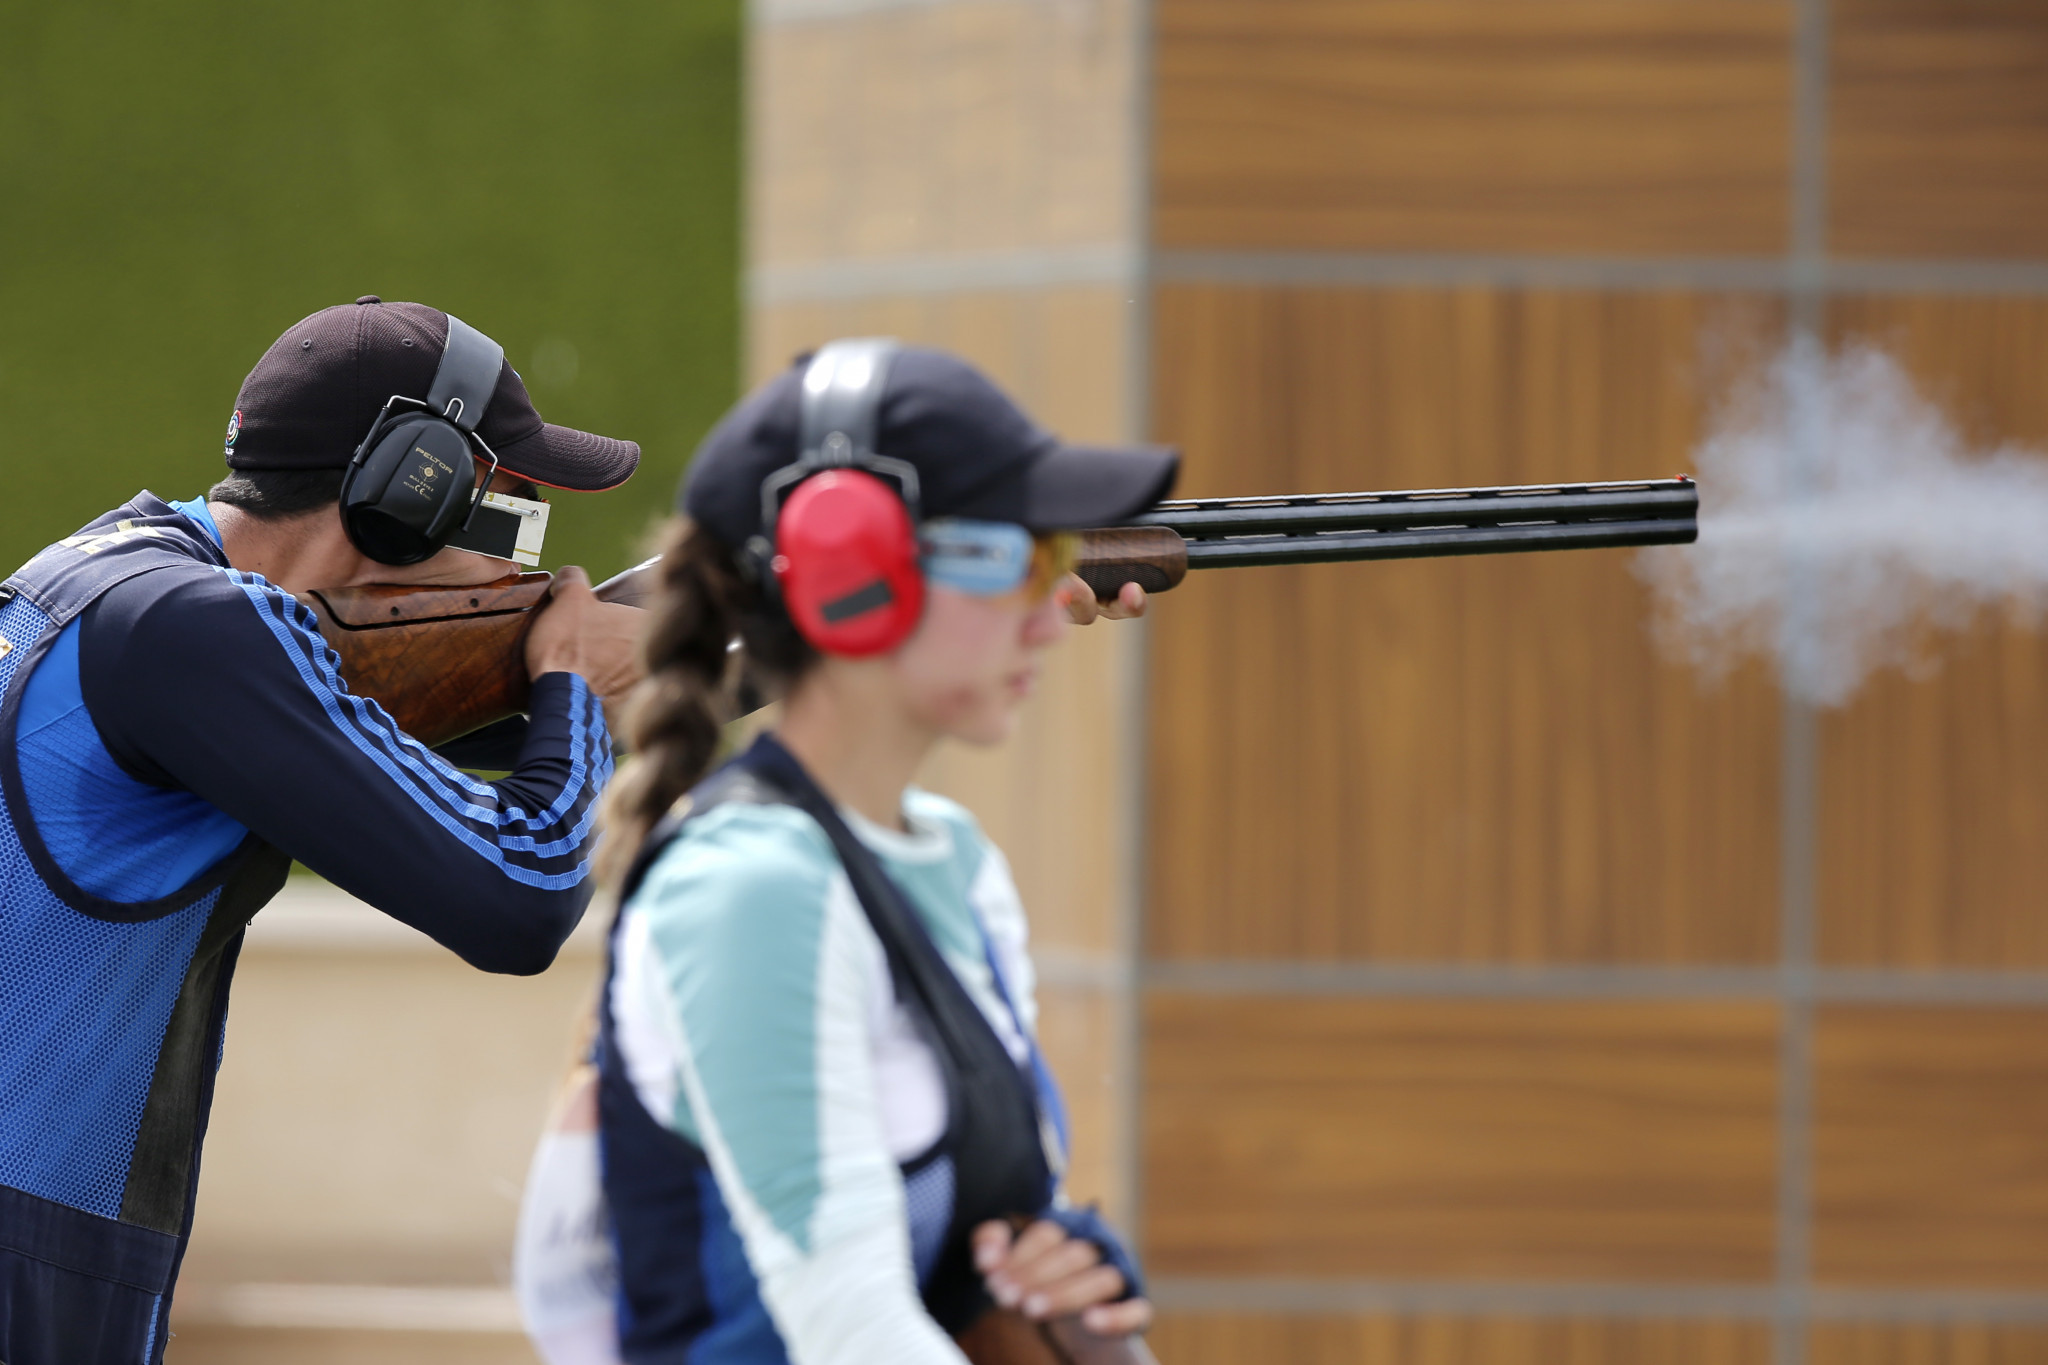 The mixed team trap events will be contested tomorrow on the final day of competition ©Getty Images